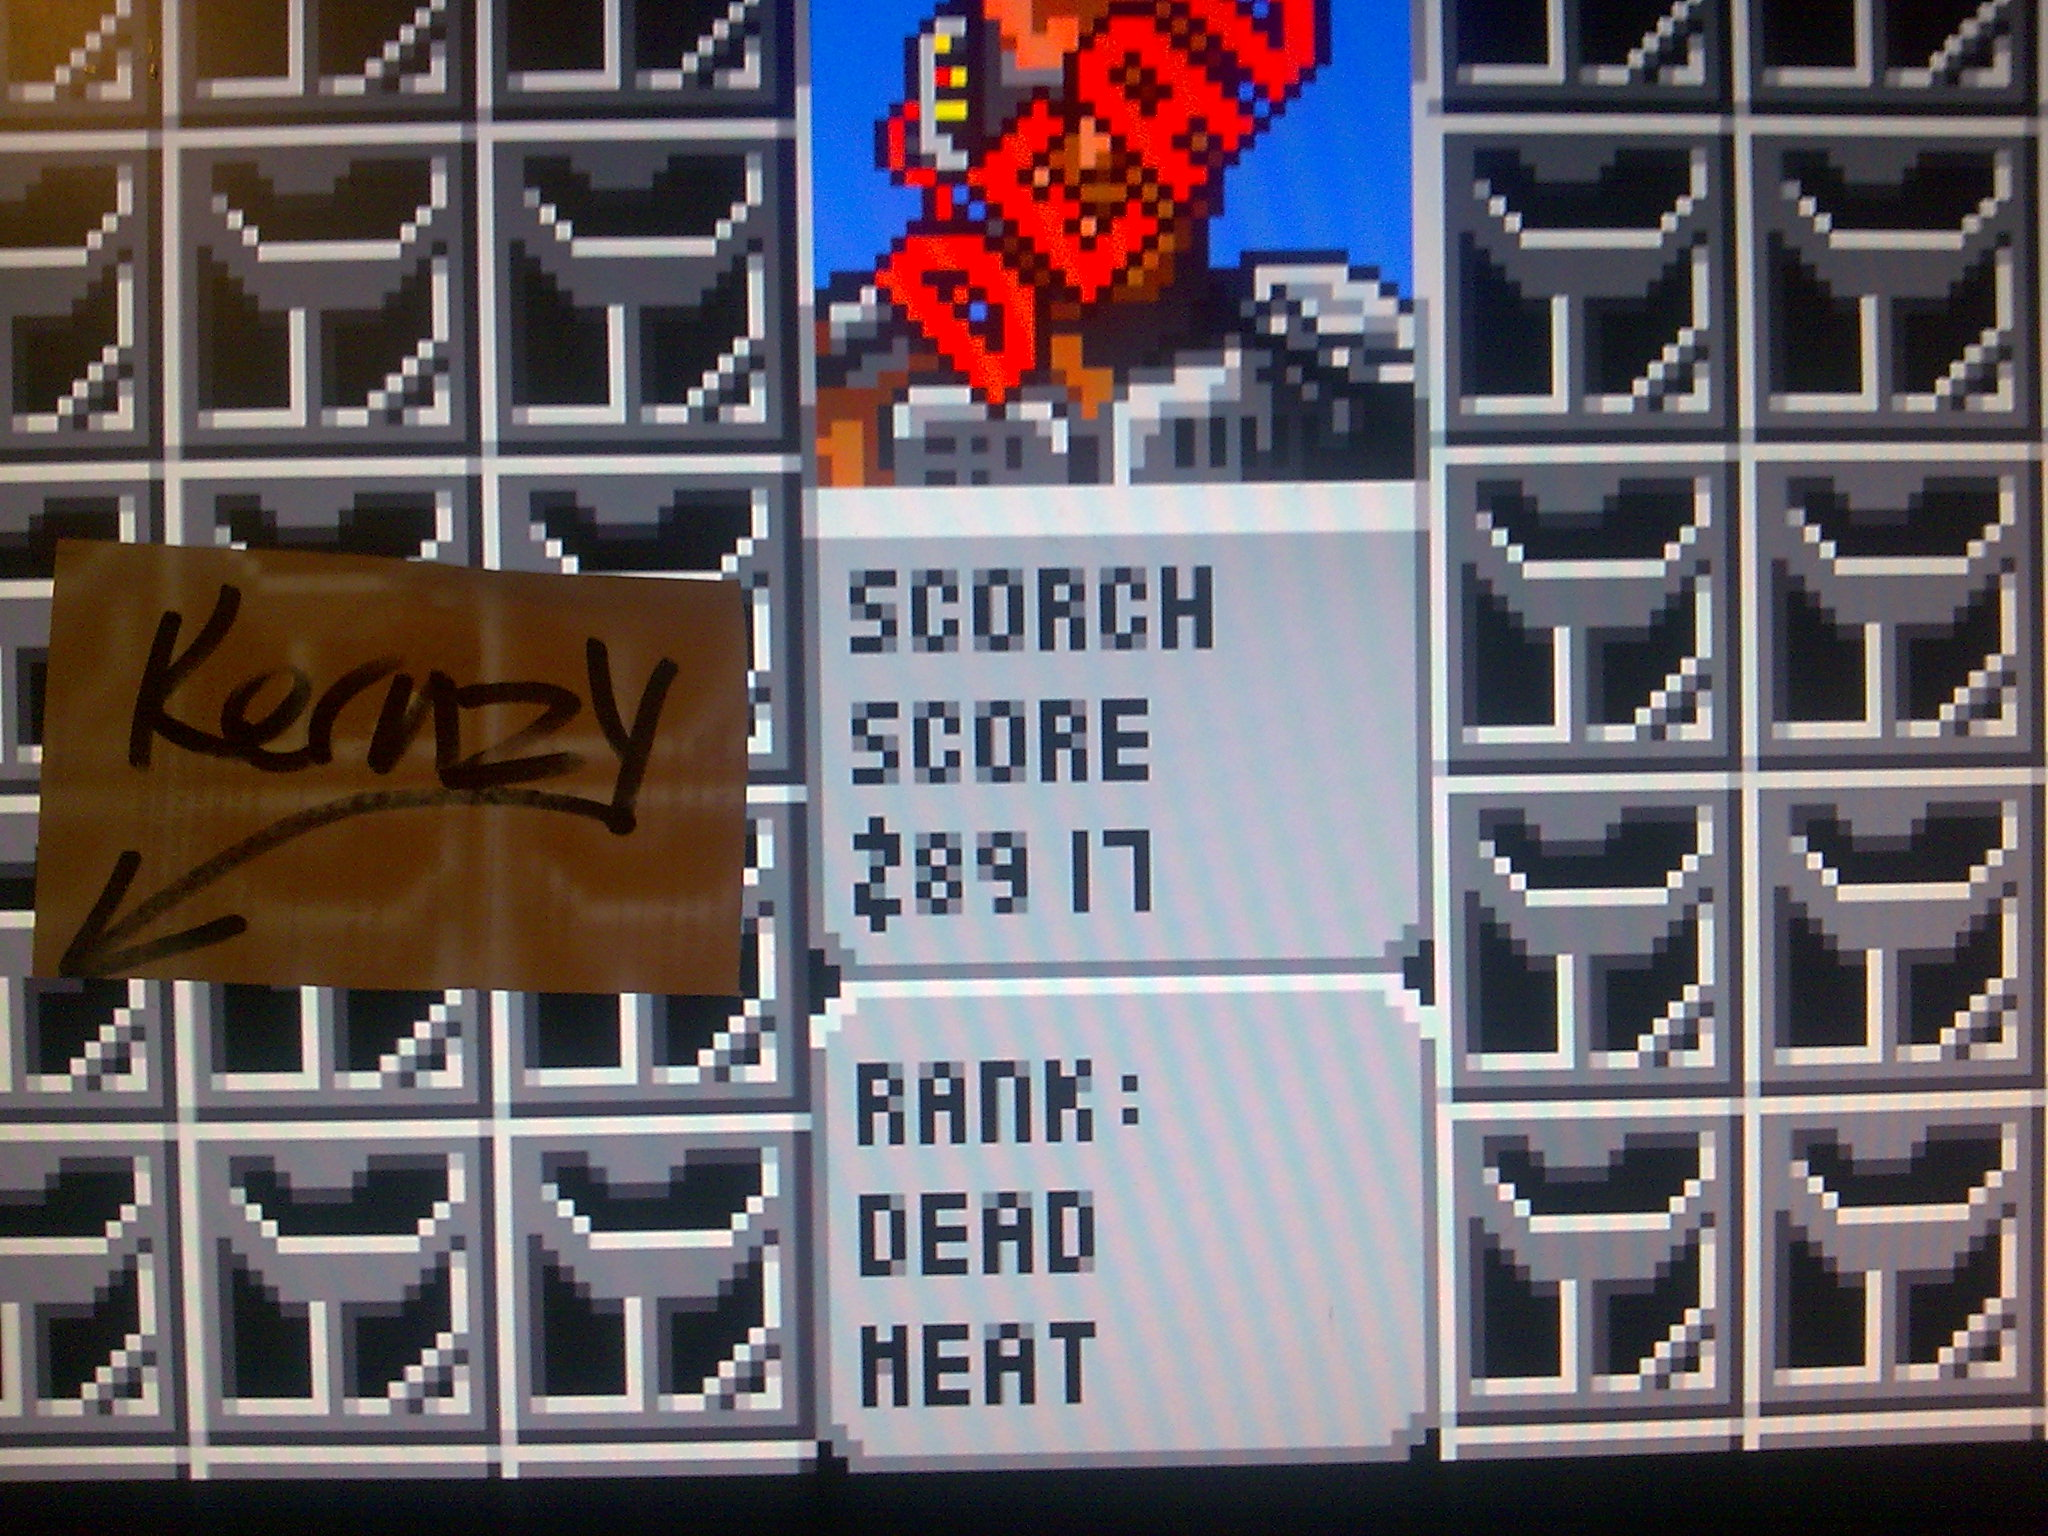 kernzy: Zarlor Mercenary (Atari Lynx Emulated) 8,917 points on 2014-10-19 01:14:22